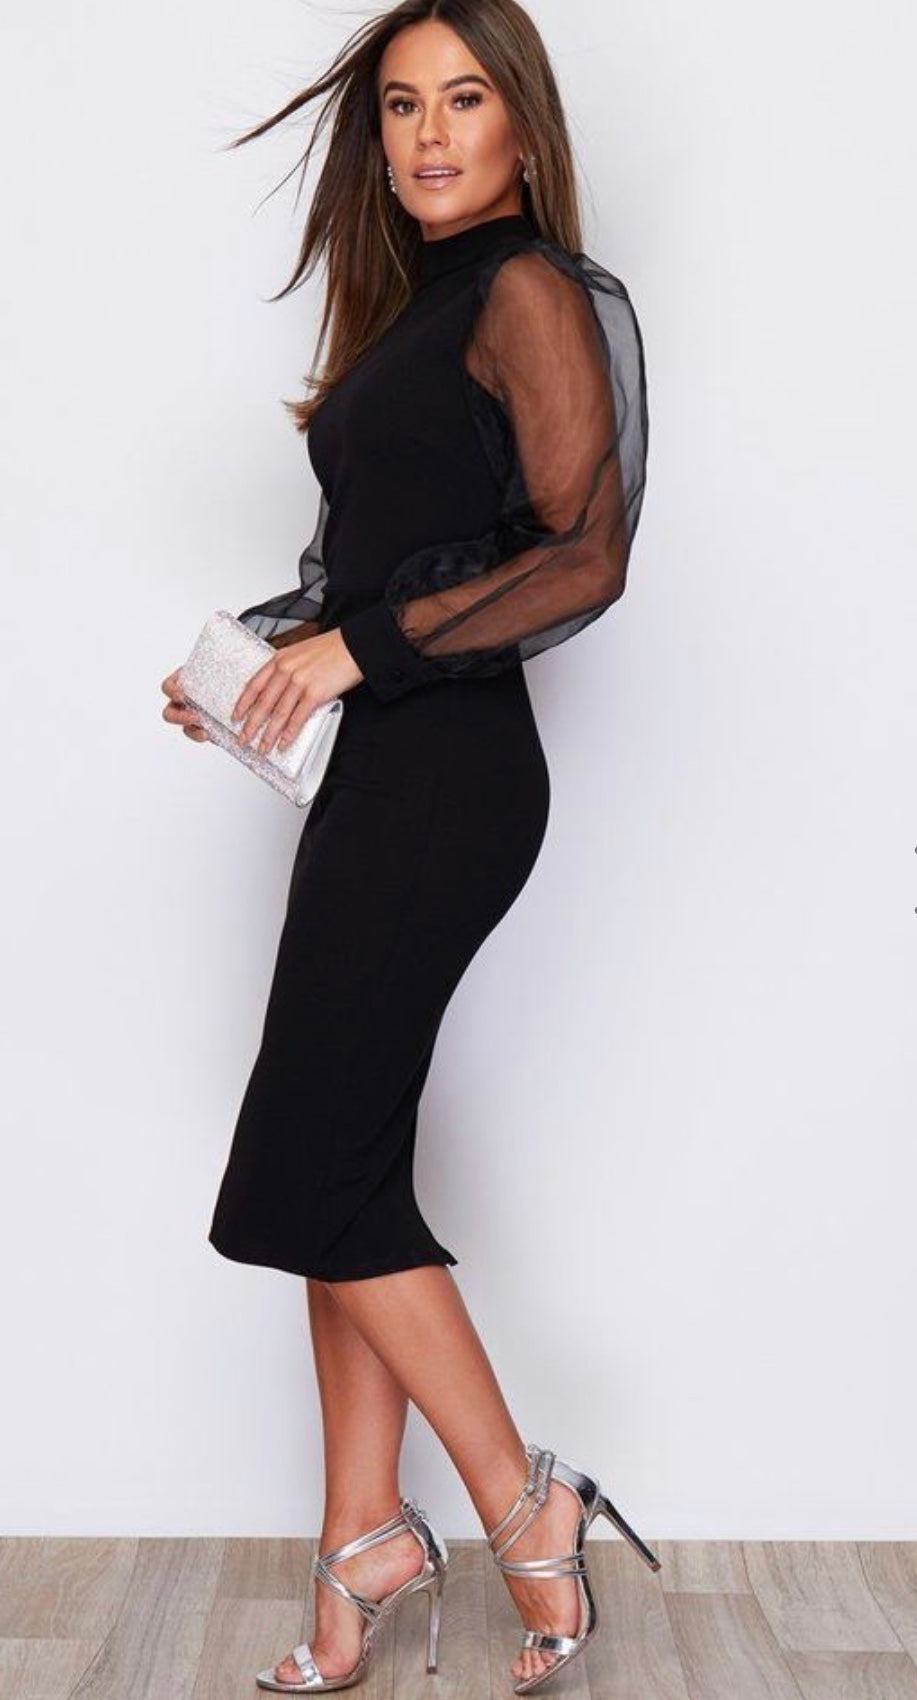 The Classy Puff Sleeve Dress  **Sizes Small - 2XL